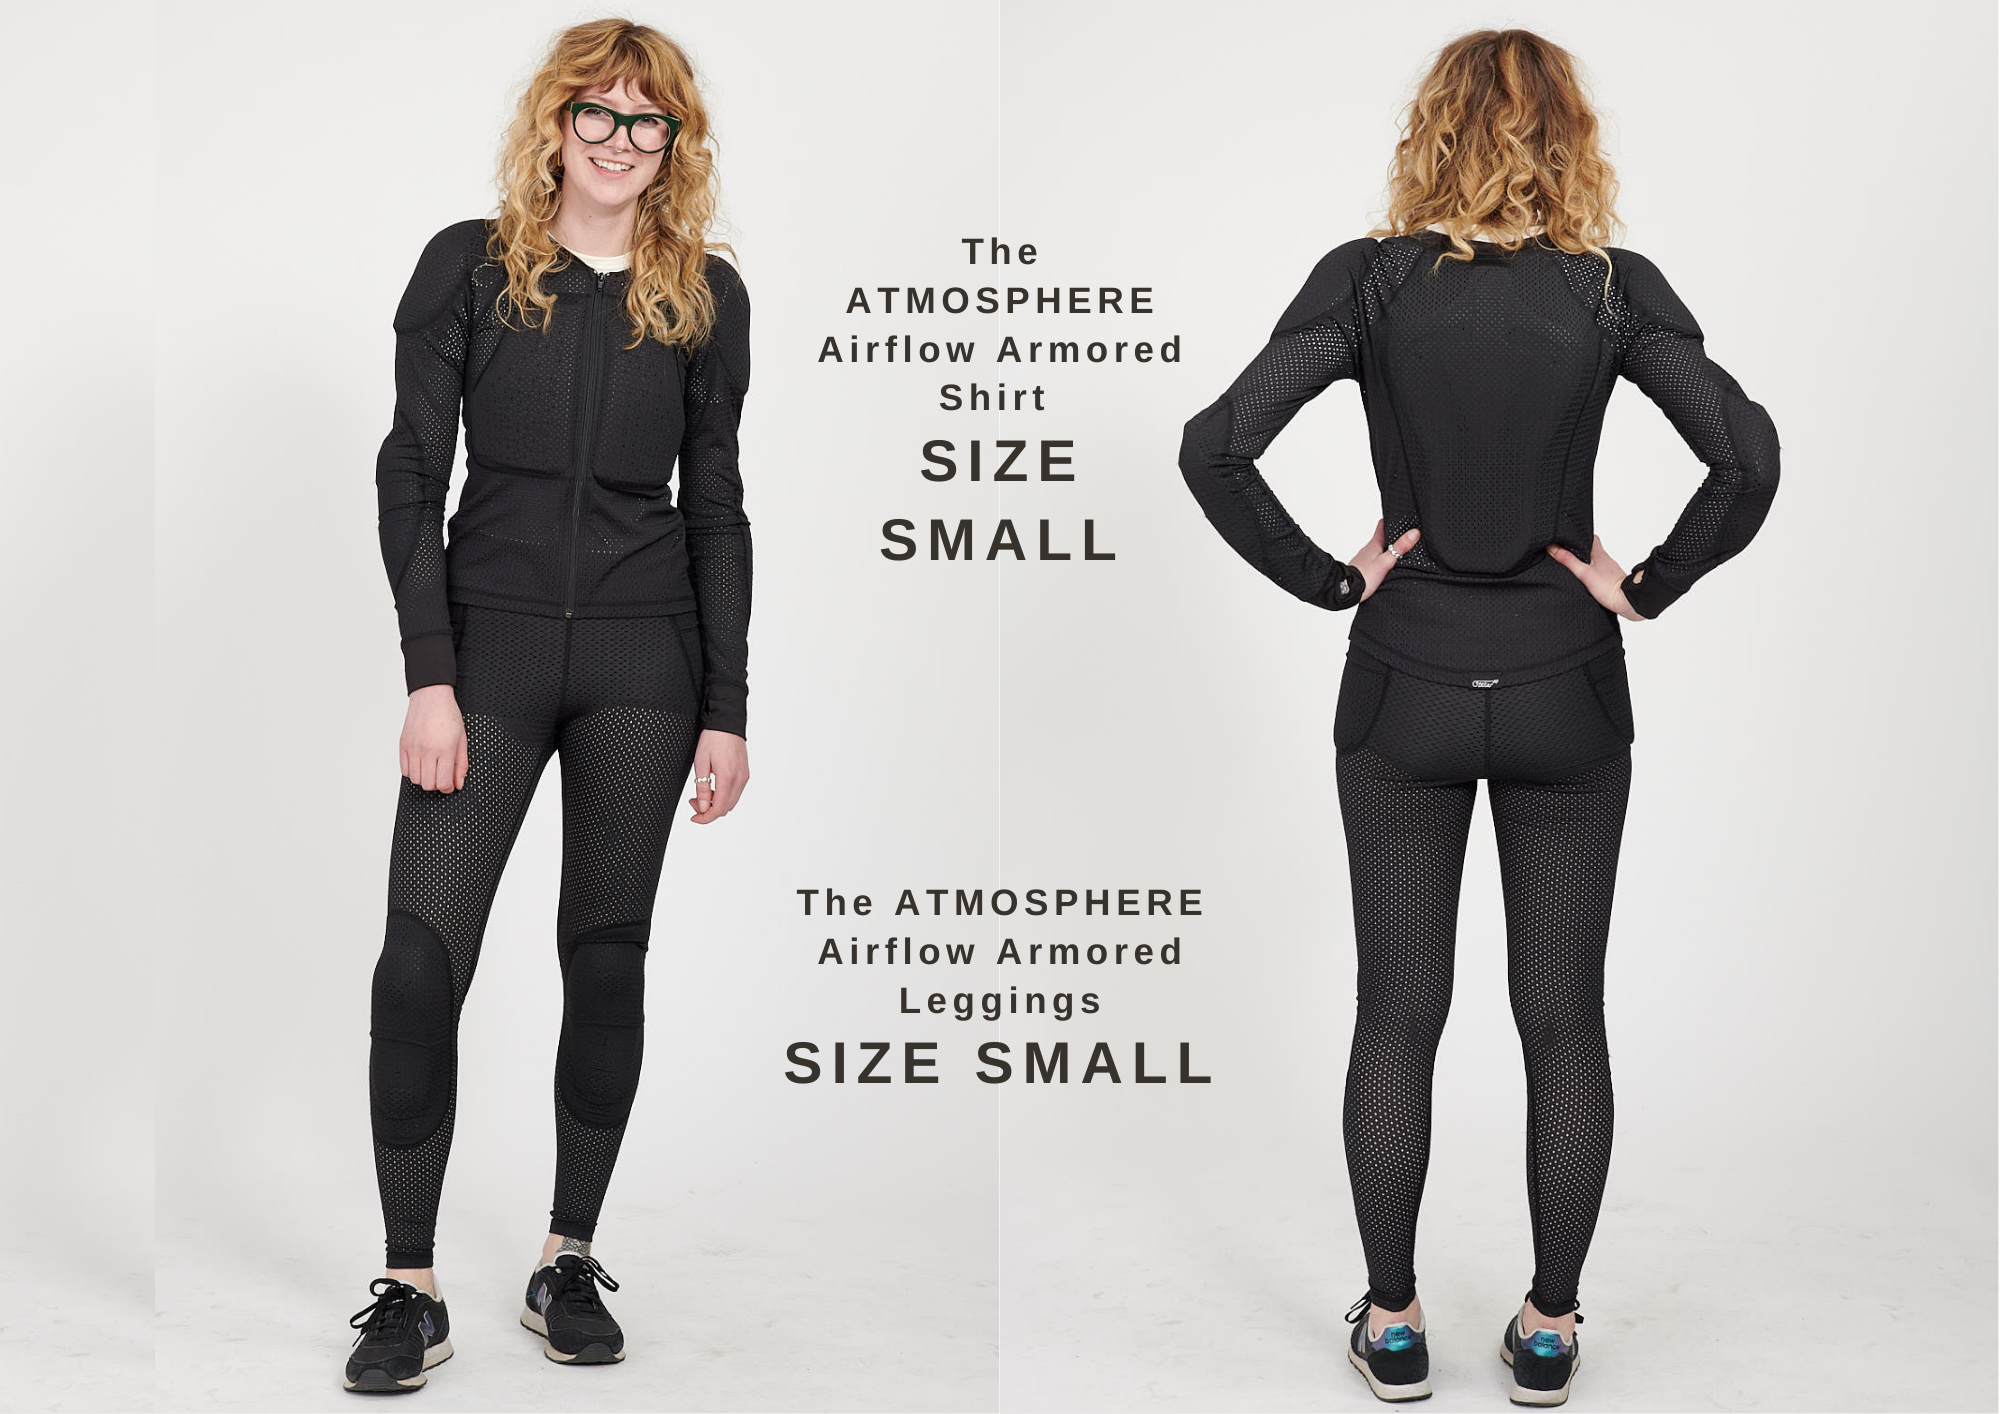 The ATMOSPHERE Airflow Armored Shirt and Leggings SIZE SMALL